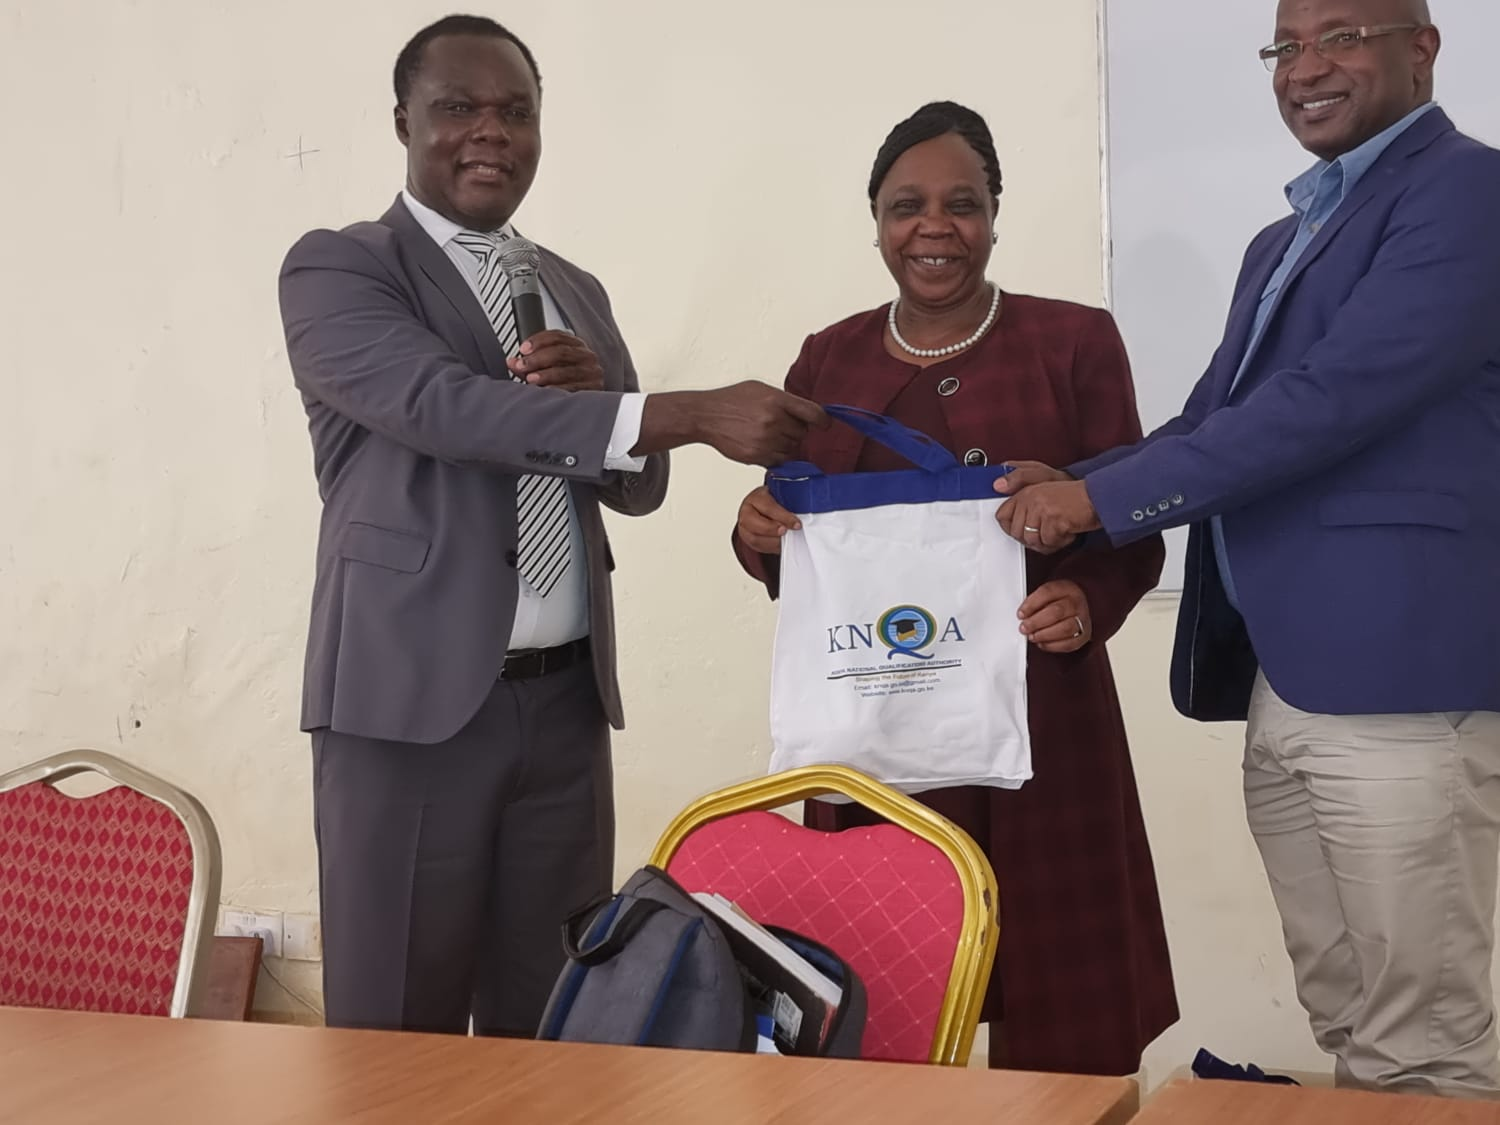 Dr Juma Mukhwana the DG KNQA with Prof Zipporah Nganga DVC Academic and Prof Reuben Muasya after delivering a Public Lecture at South Eastern Kenya University in Kitui County today. He emphasized that universities need to think outside the box to  guarantee their financial sustainability and transform Society.